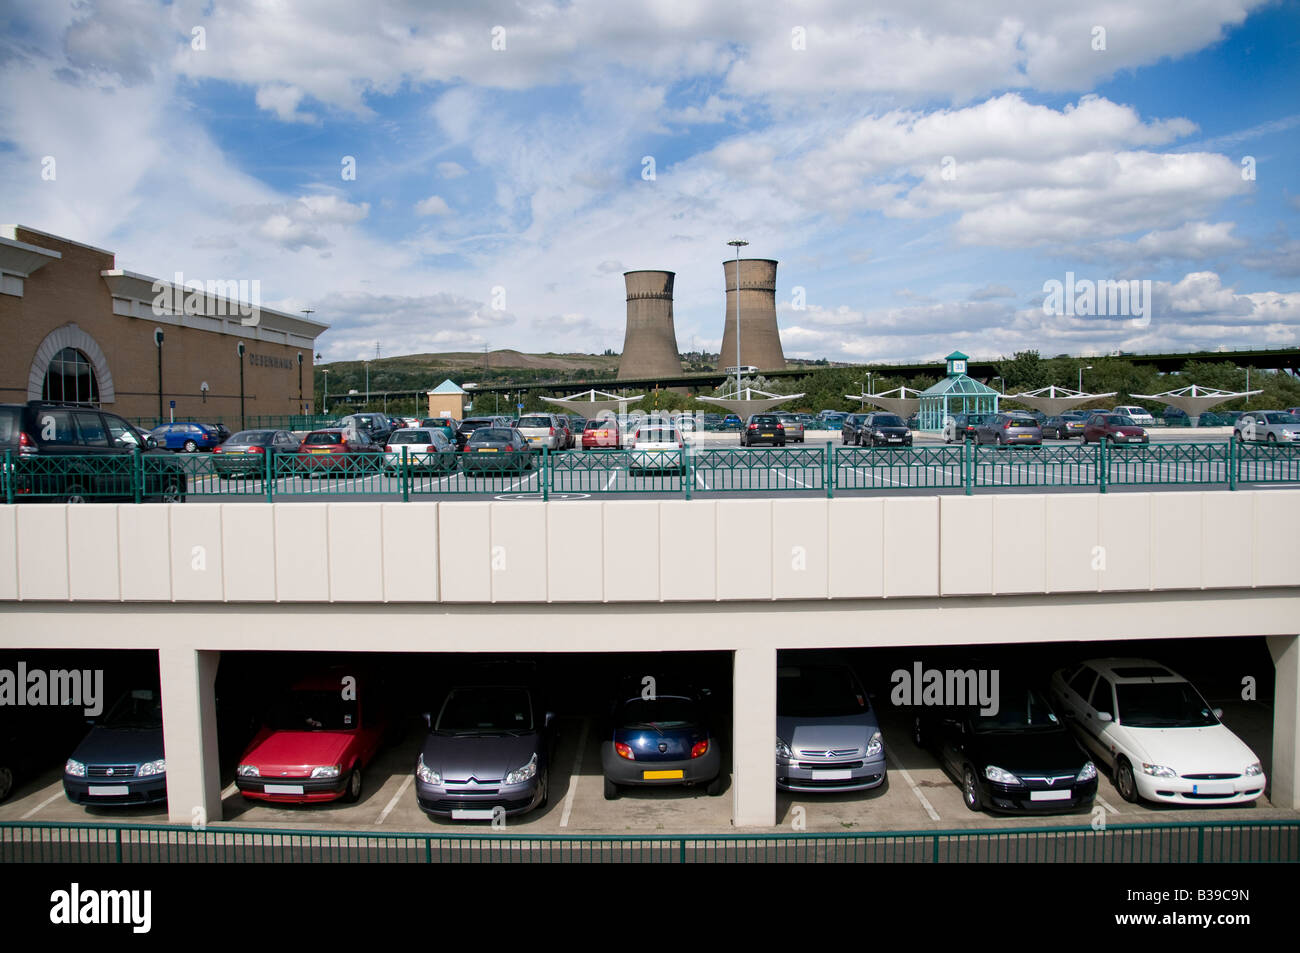 Tinsley Cooling Towers taken from Meadowhall shopping centre, 12 hours before the Towers were demolished on 24 August - Stock Image